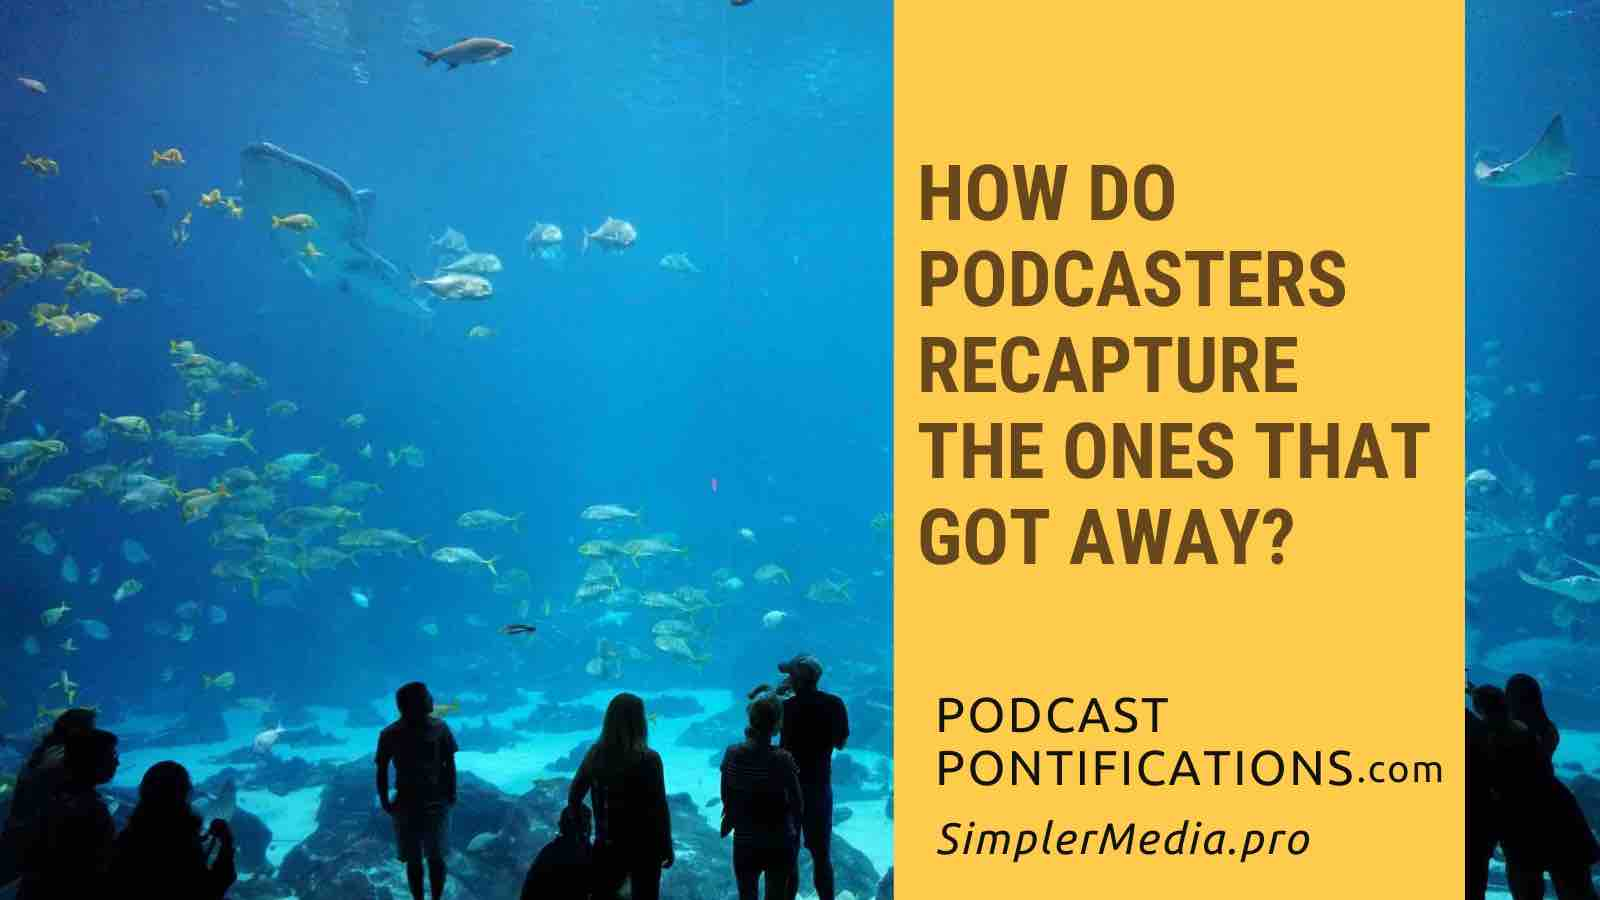 How Do Podcasters Recapture The Ones That Got Away?